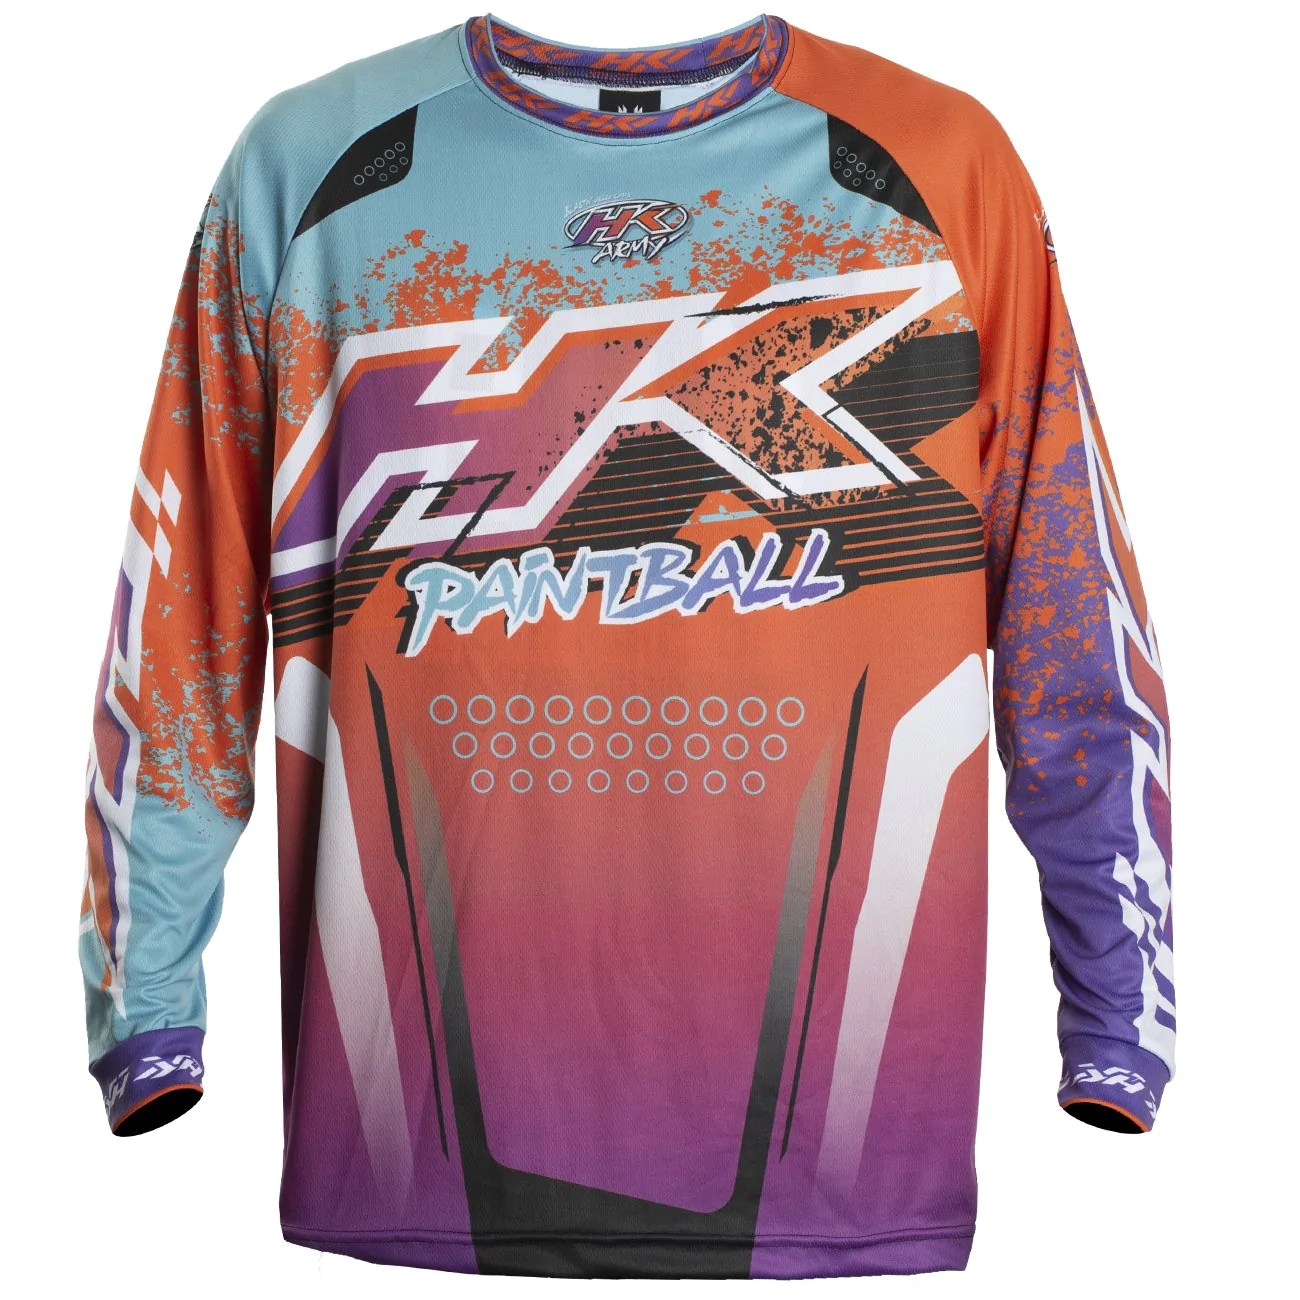 Retro Jerseys Liquid Orange Teal Retro Jersey